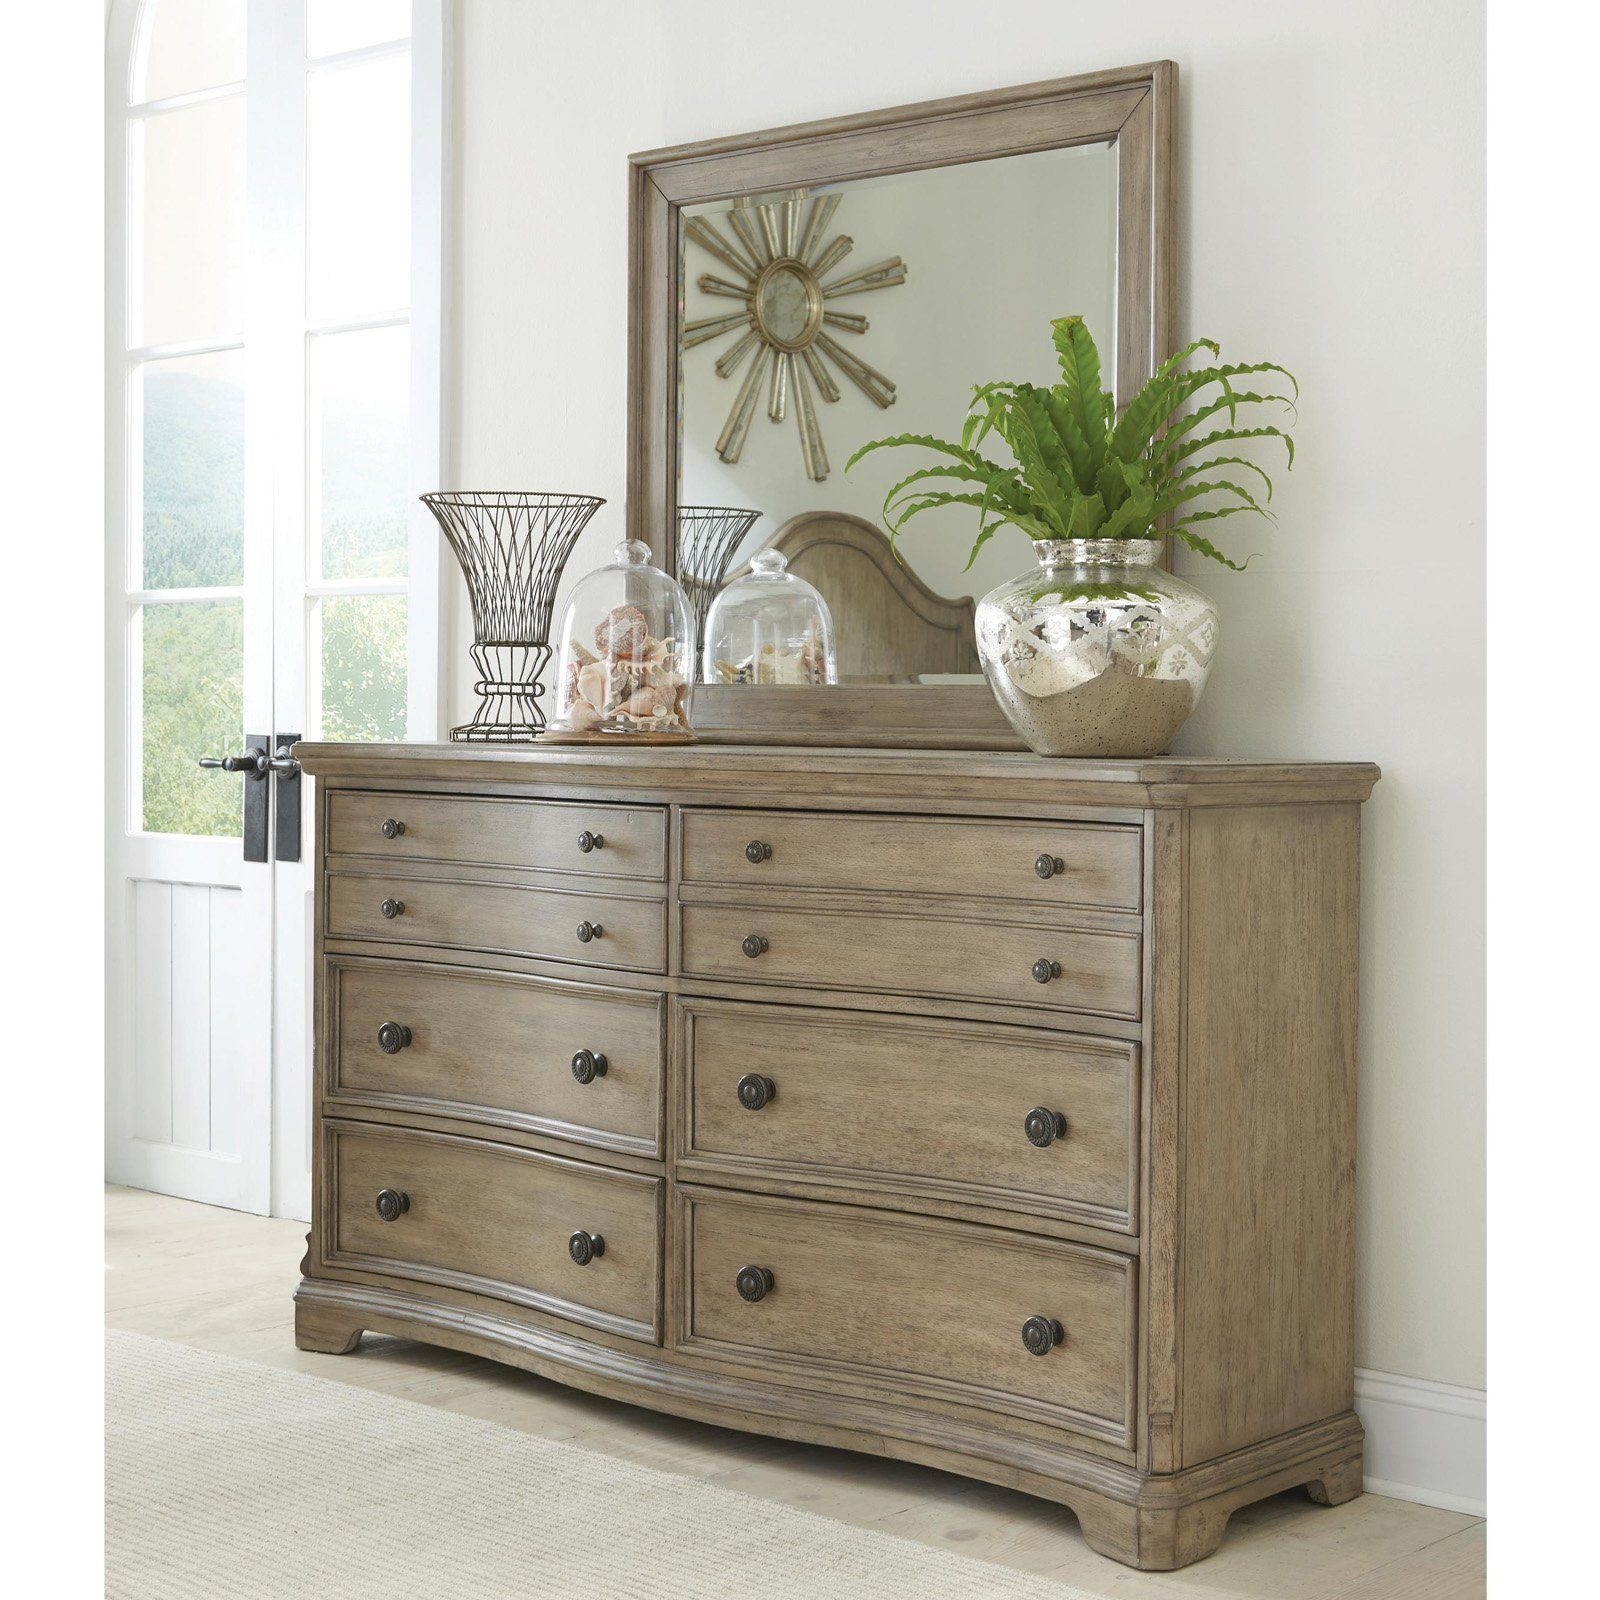 Riverside Corinne 6 Drawer Dresser with Optional Mirror | from ...